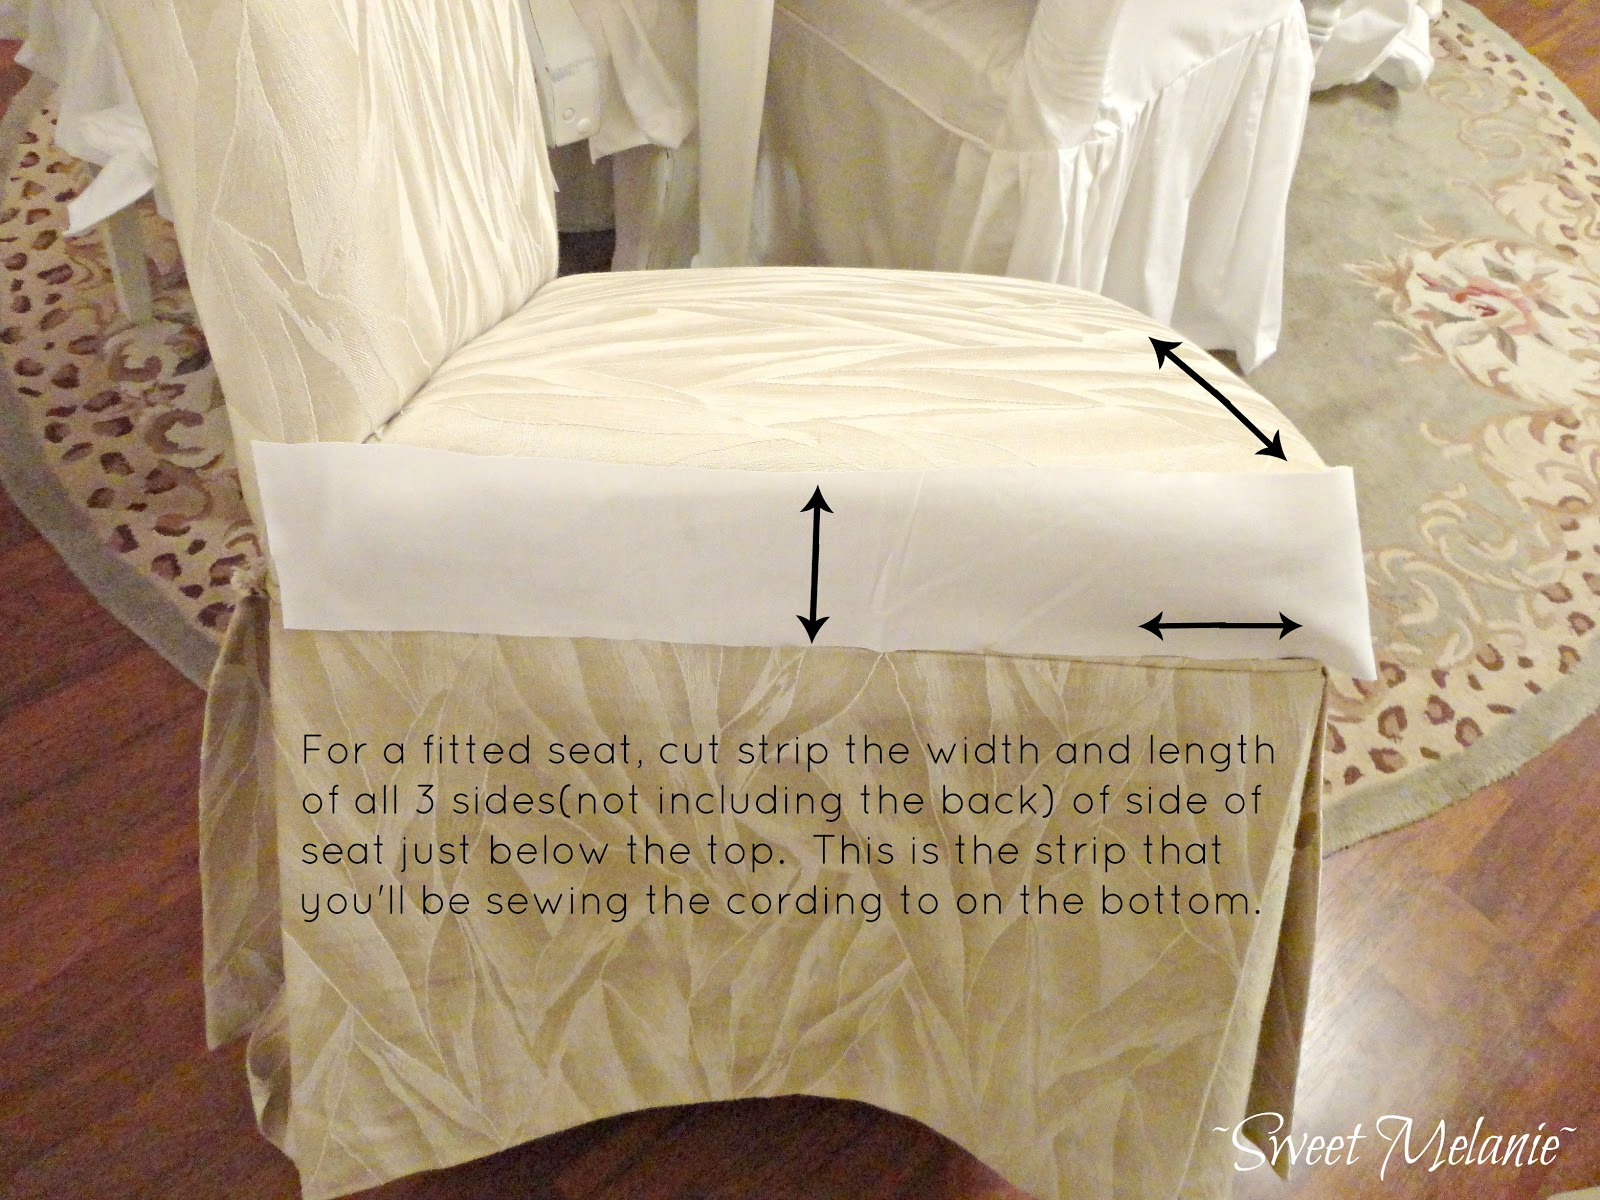 how to make chair covers at home deck chairs uk dining slipcovers large and beautiful